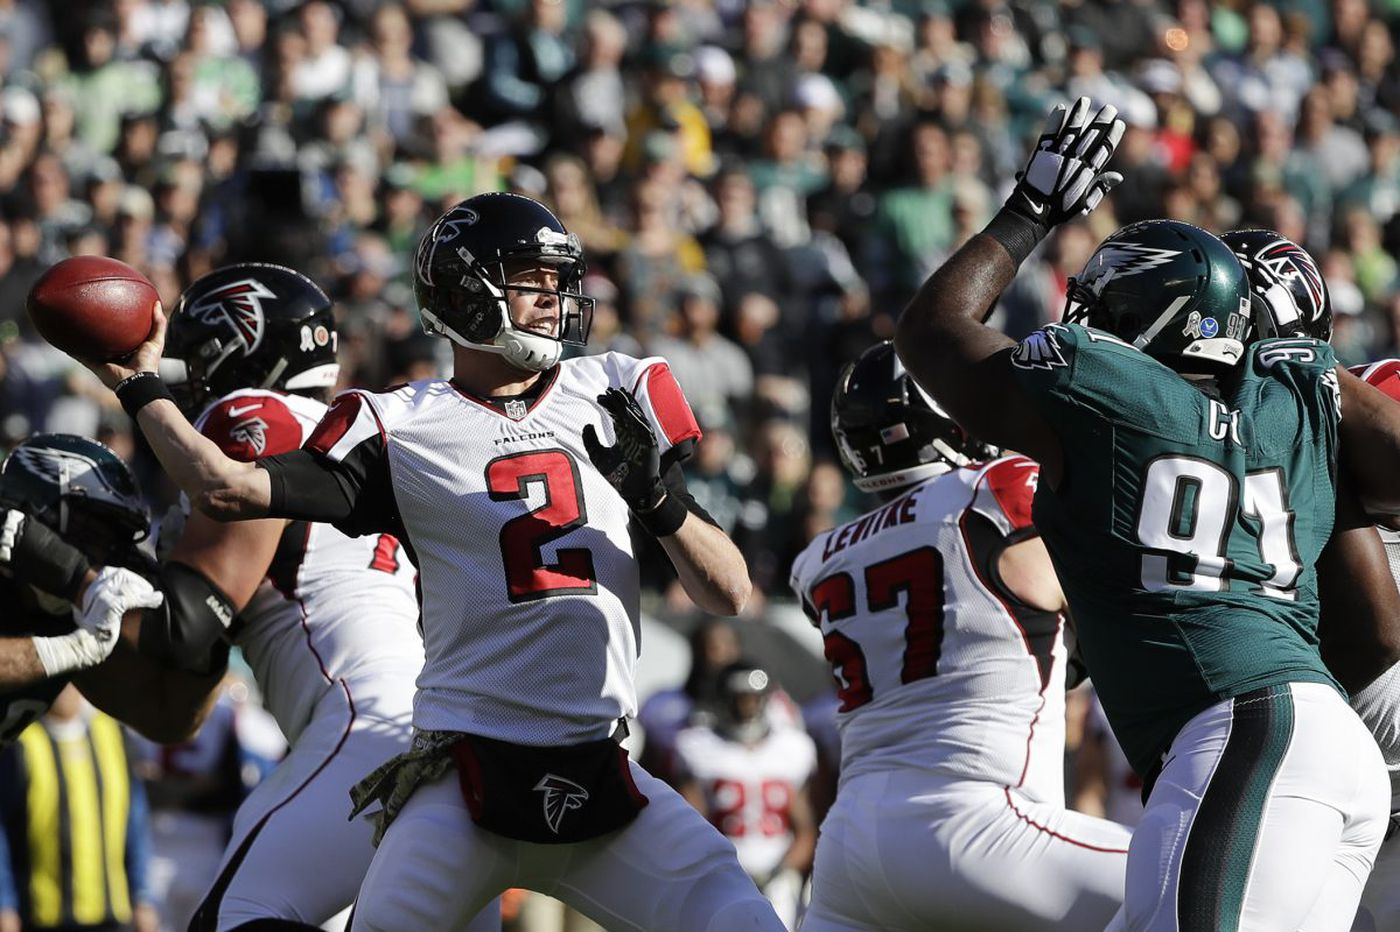 Eagles ready for Falcons, N.J. doctor accused in wife's murder makes first court appearance | Morning Newsletter